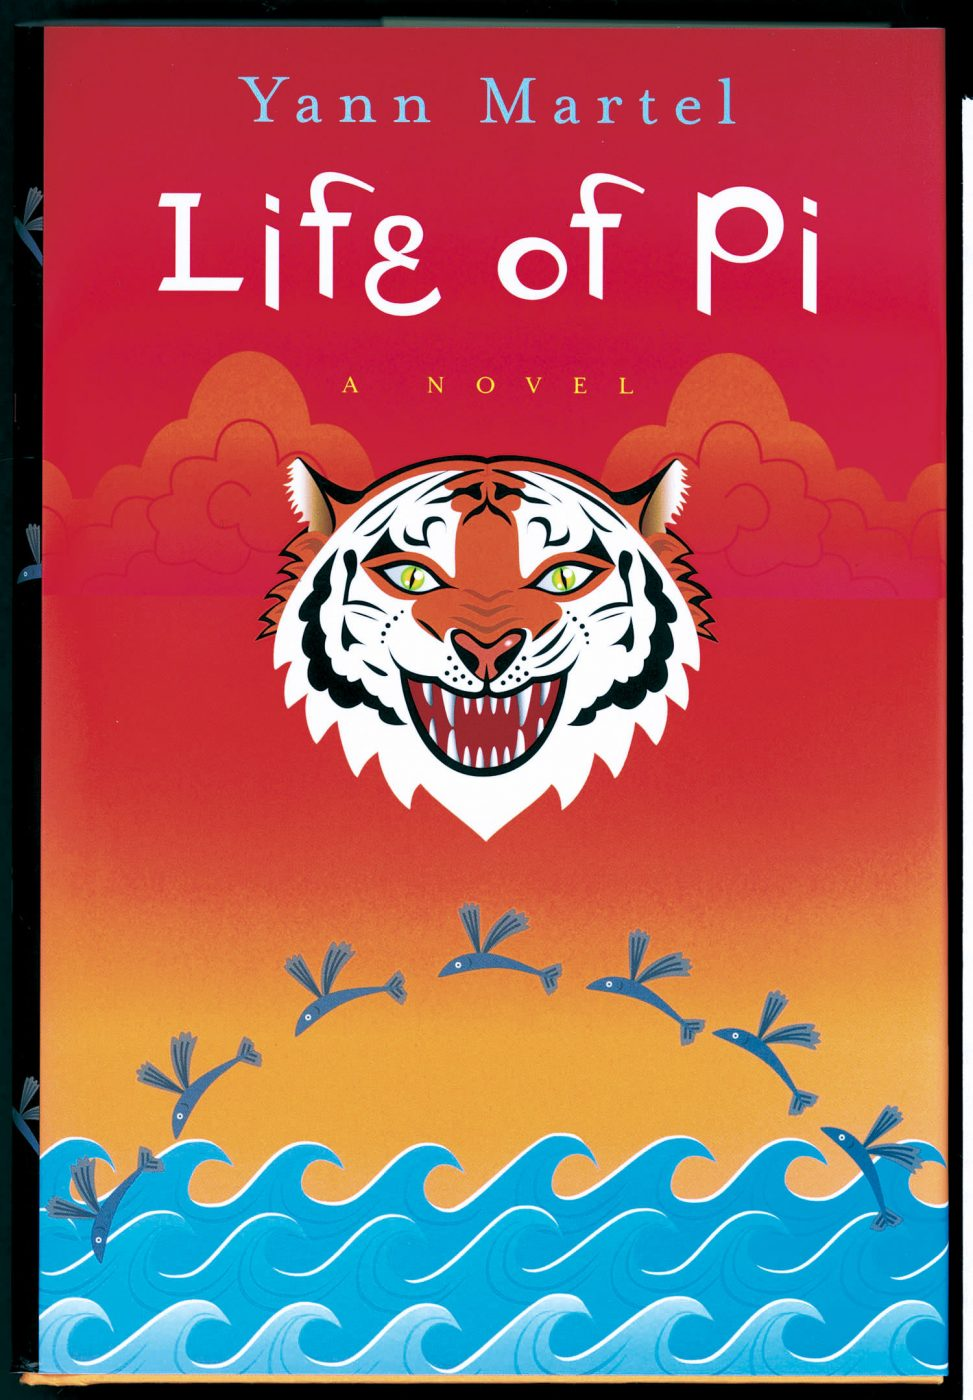 life of pi storytelling and religion Life of pi attempts not to prove god's warm in their praise of martel's storytelling abilities, they have found his treatment of religion unpersuasive.